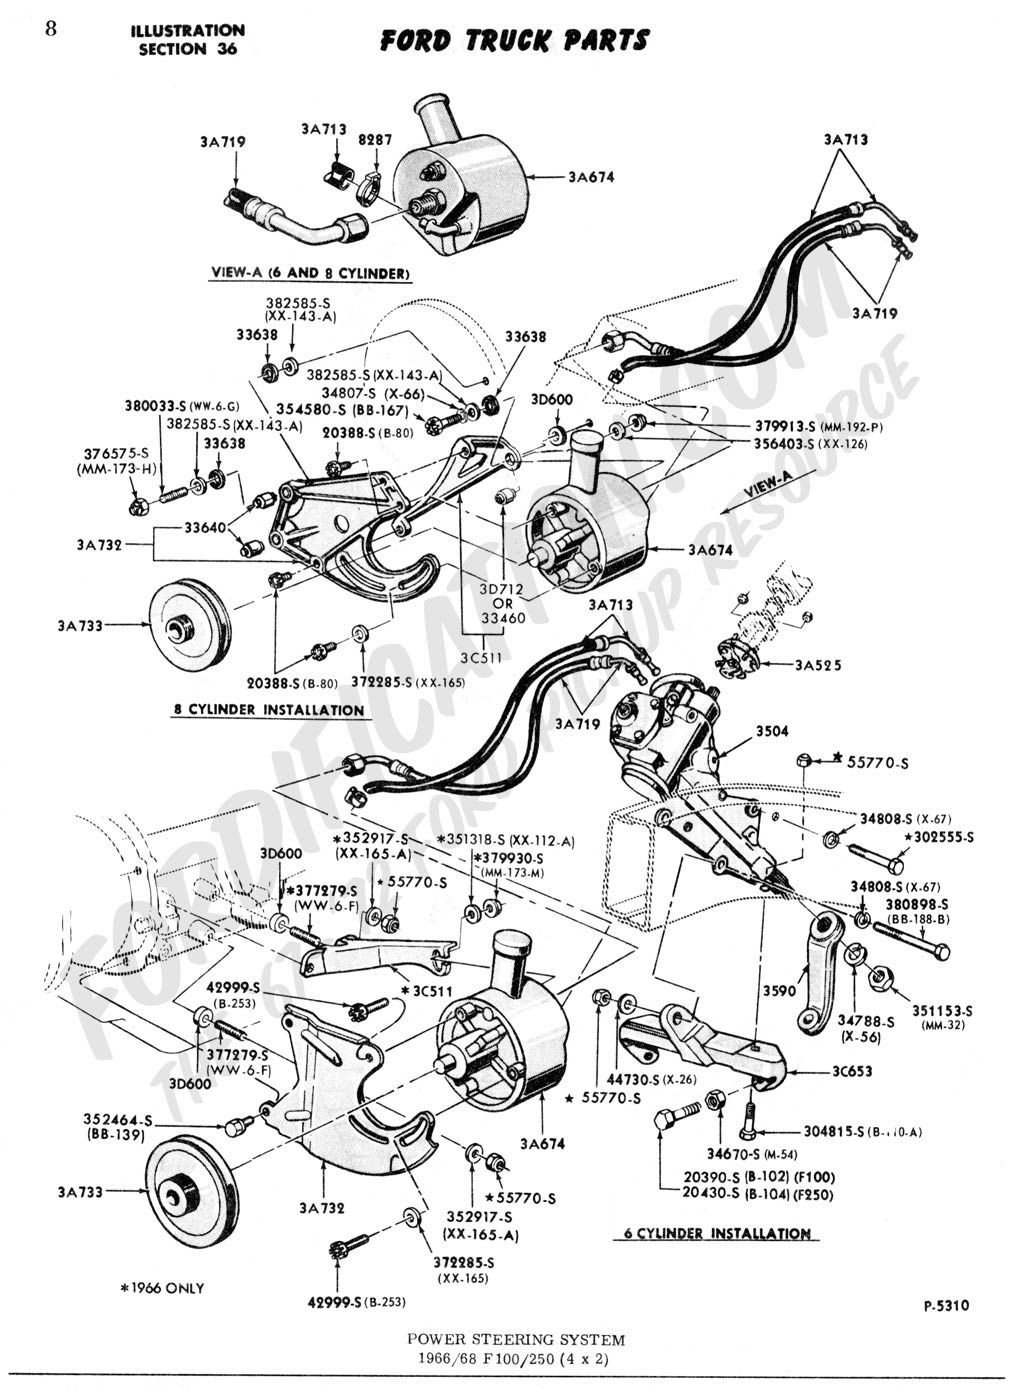 Vactilt also I further Install Cebk A moreover D Falcon Wiring Help Needed Ford Ranchero Diagram in addition Maxresdefault. on 1964 ford falcon steering column diagram